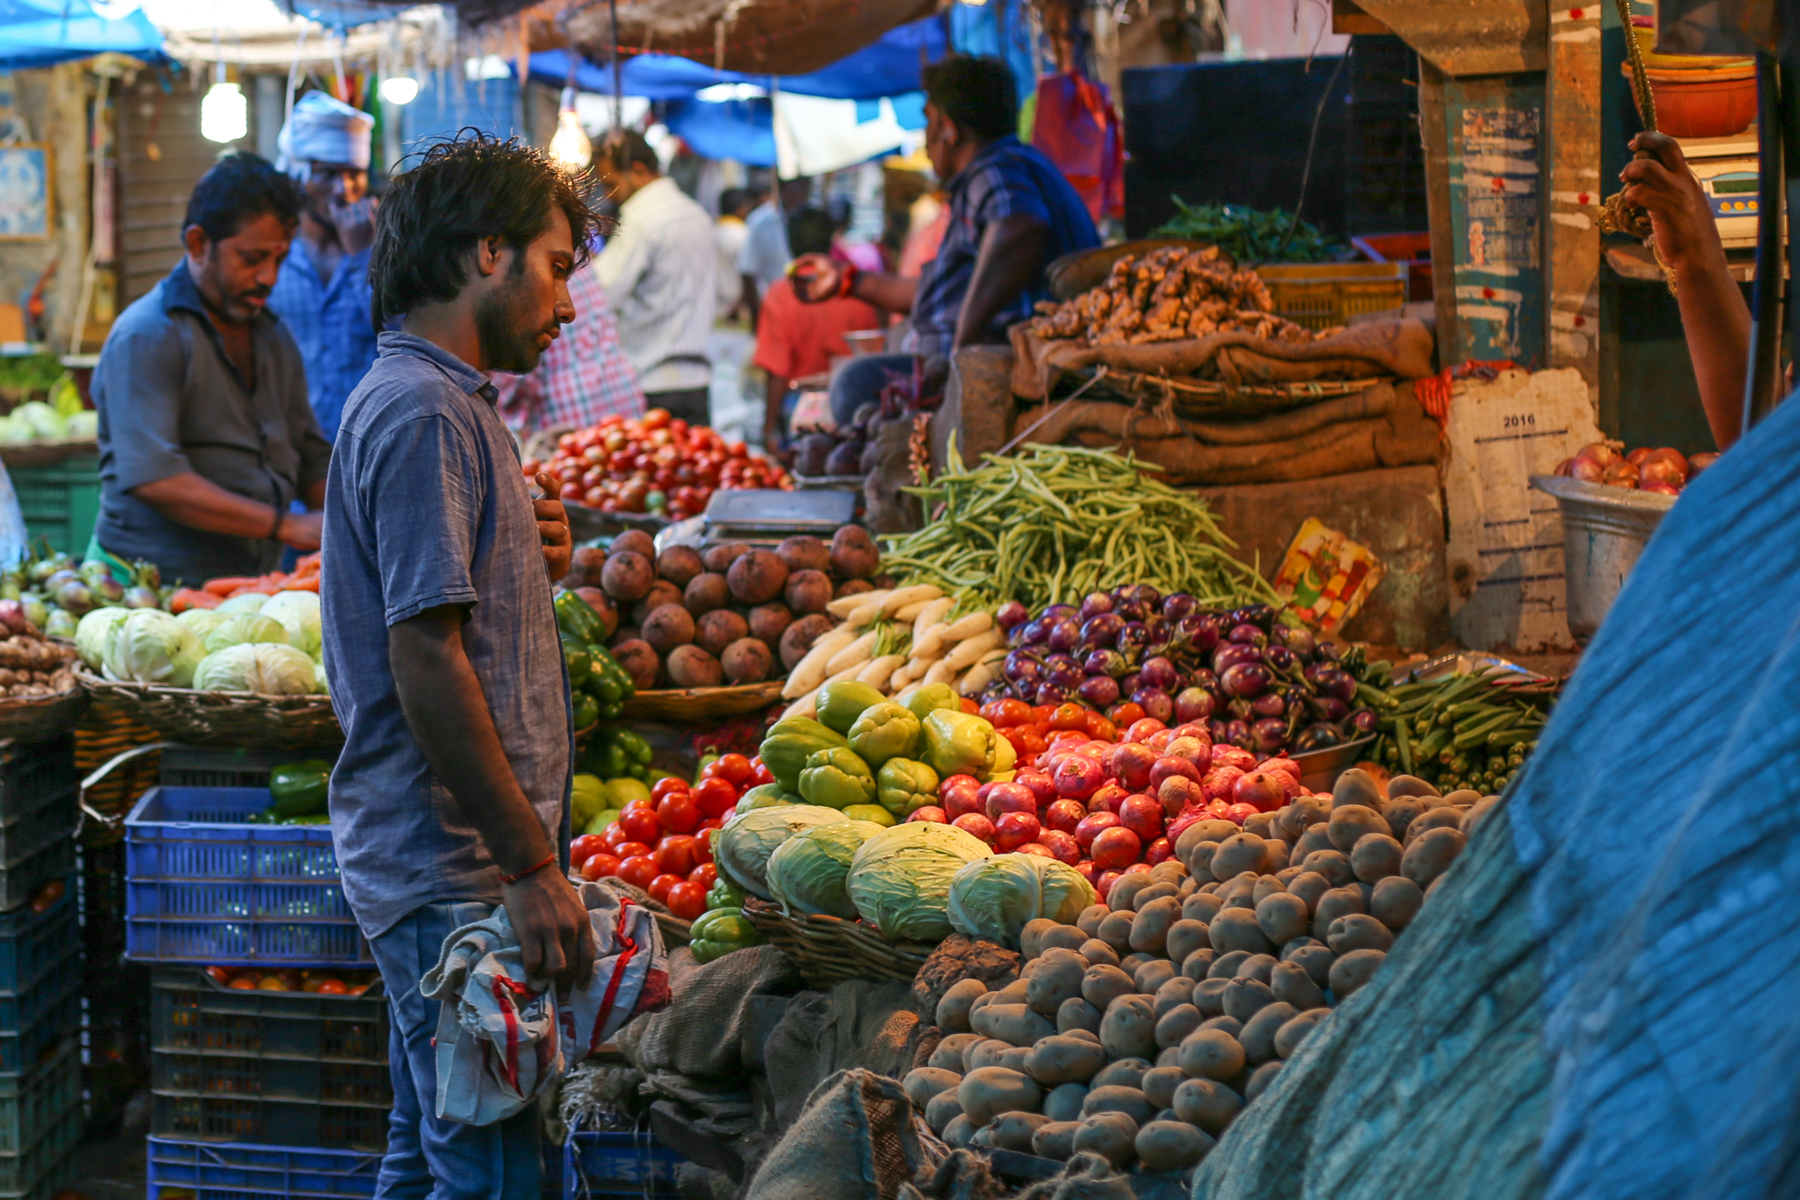 Inde-marché-fruits-légumes-pondichery-goubert-market